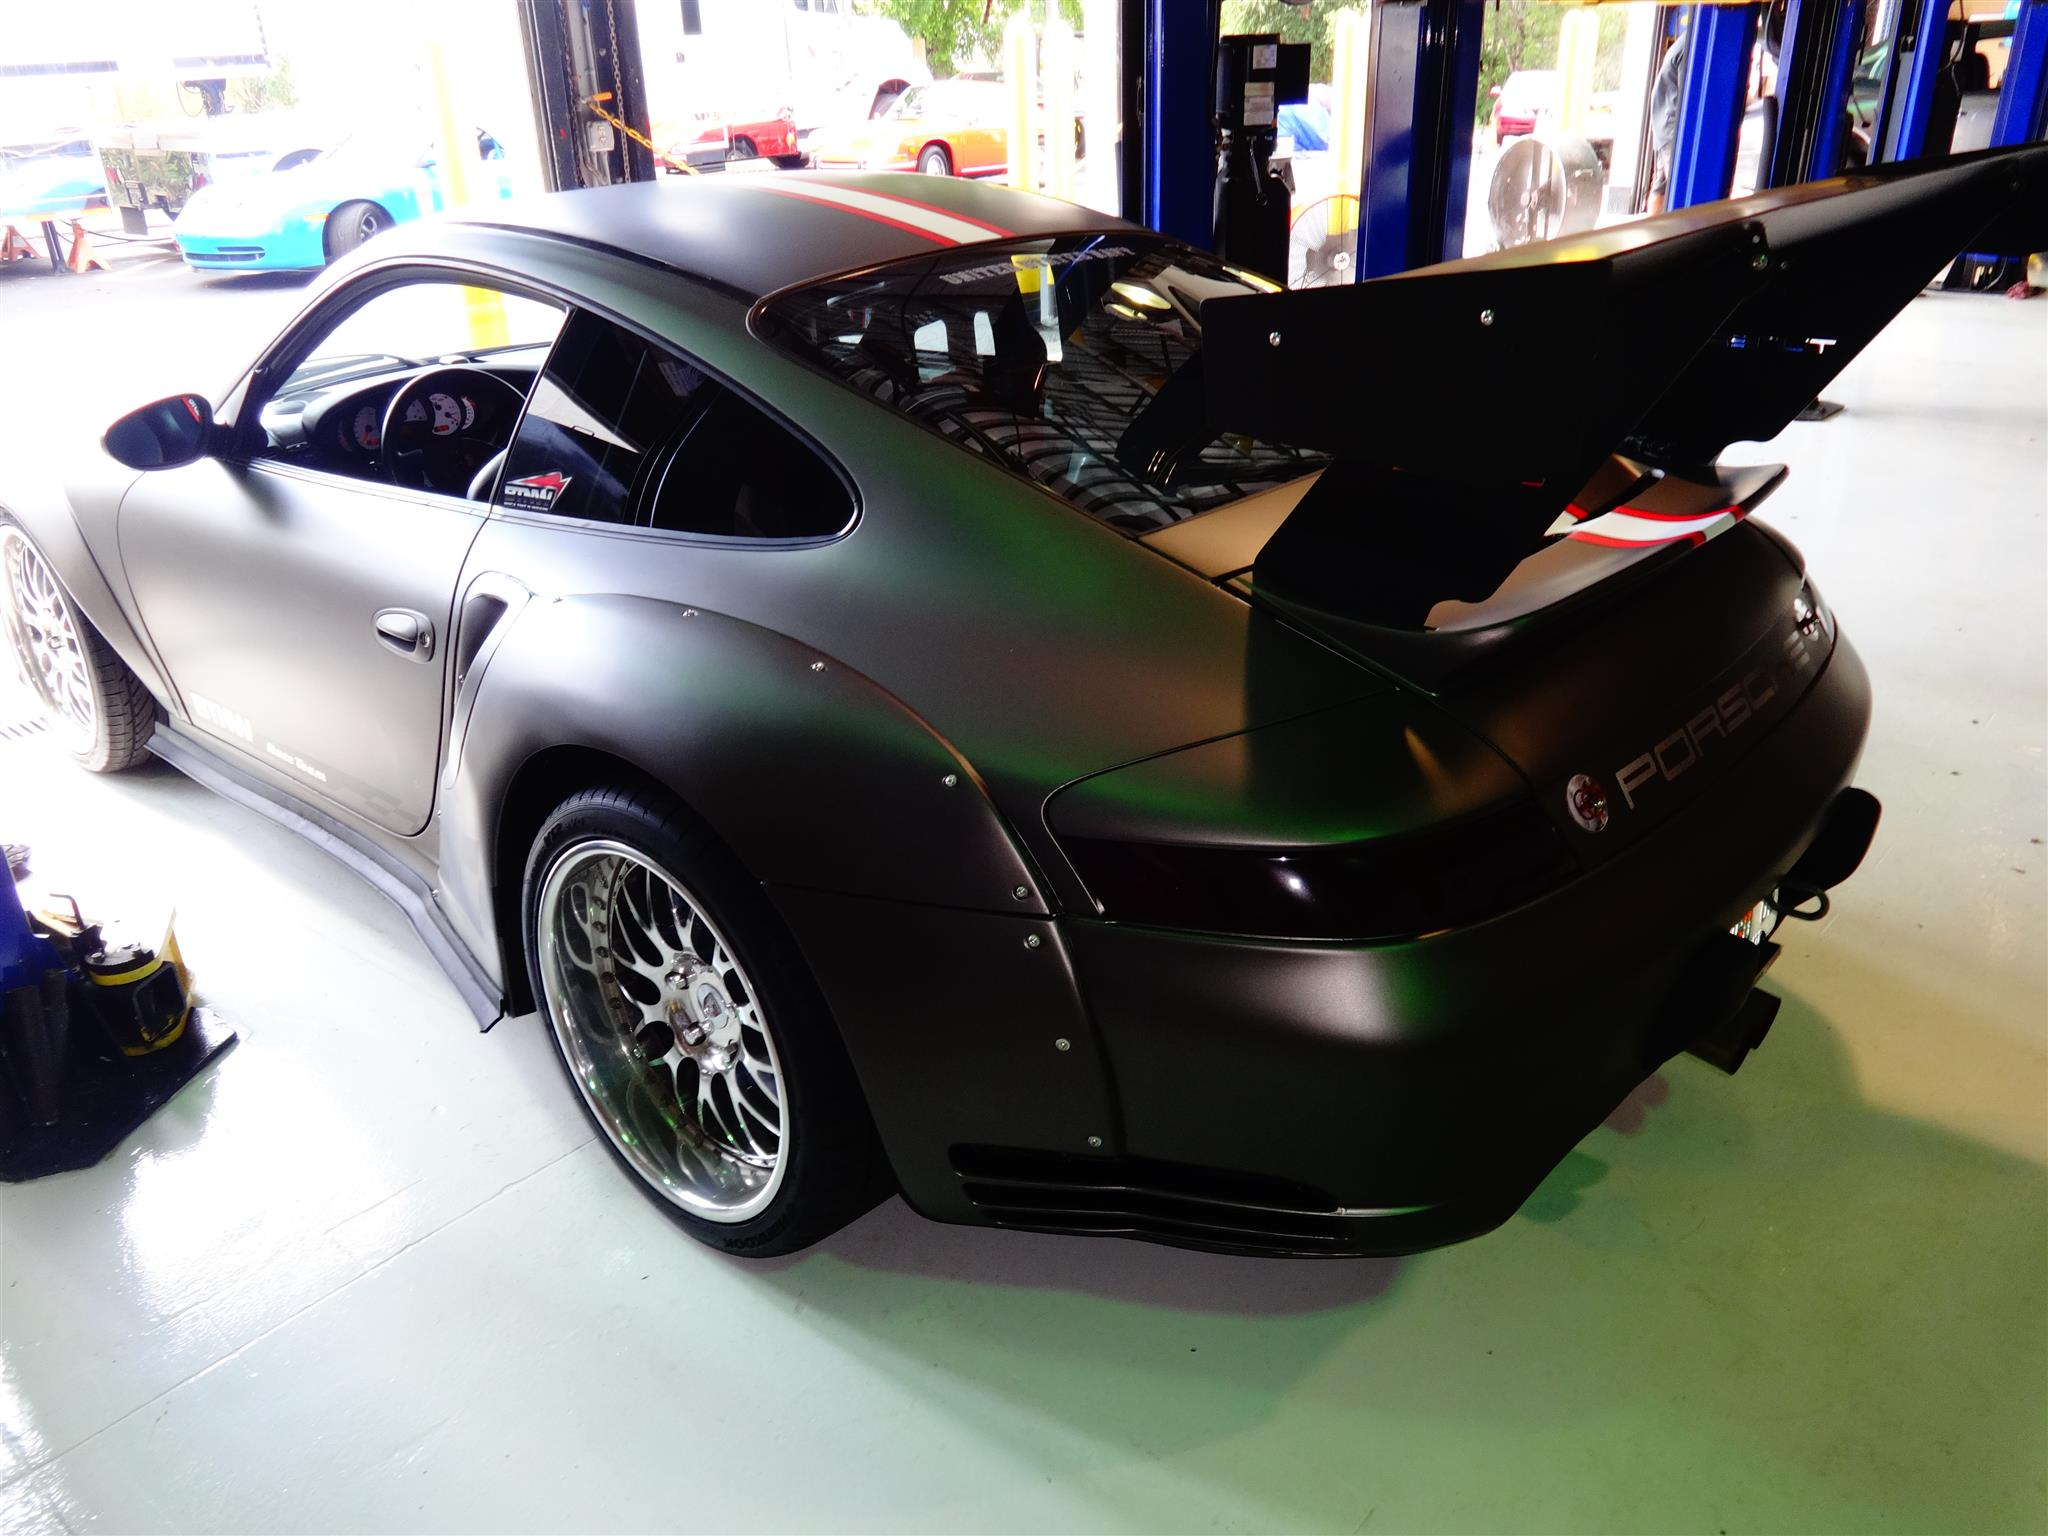 Air Ride Delete Kit Modified Porsche 911 Turbo By Tuners Motorsports